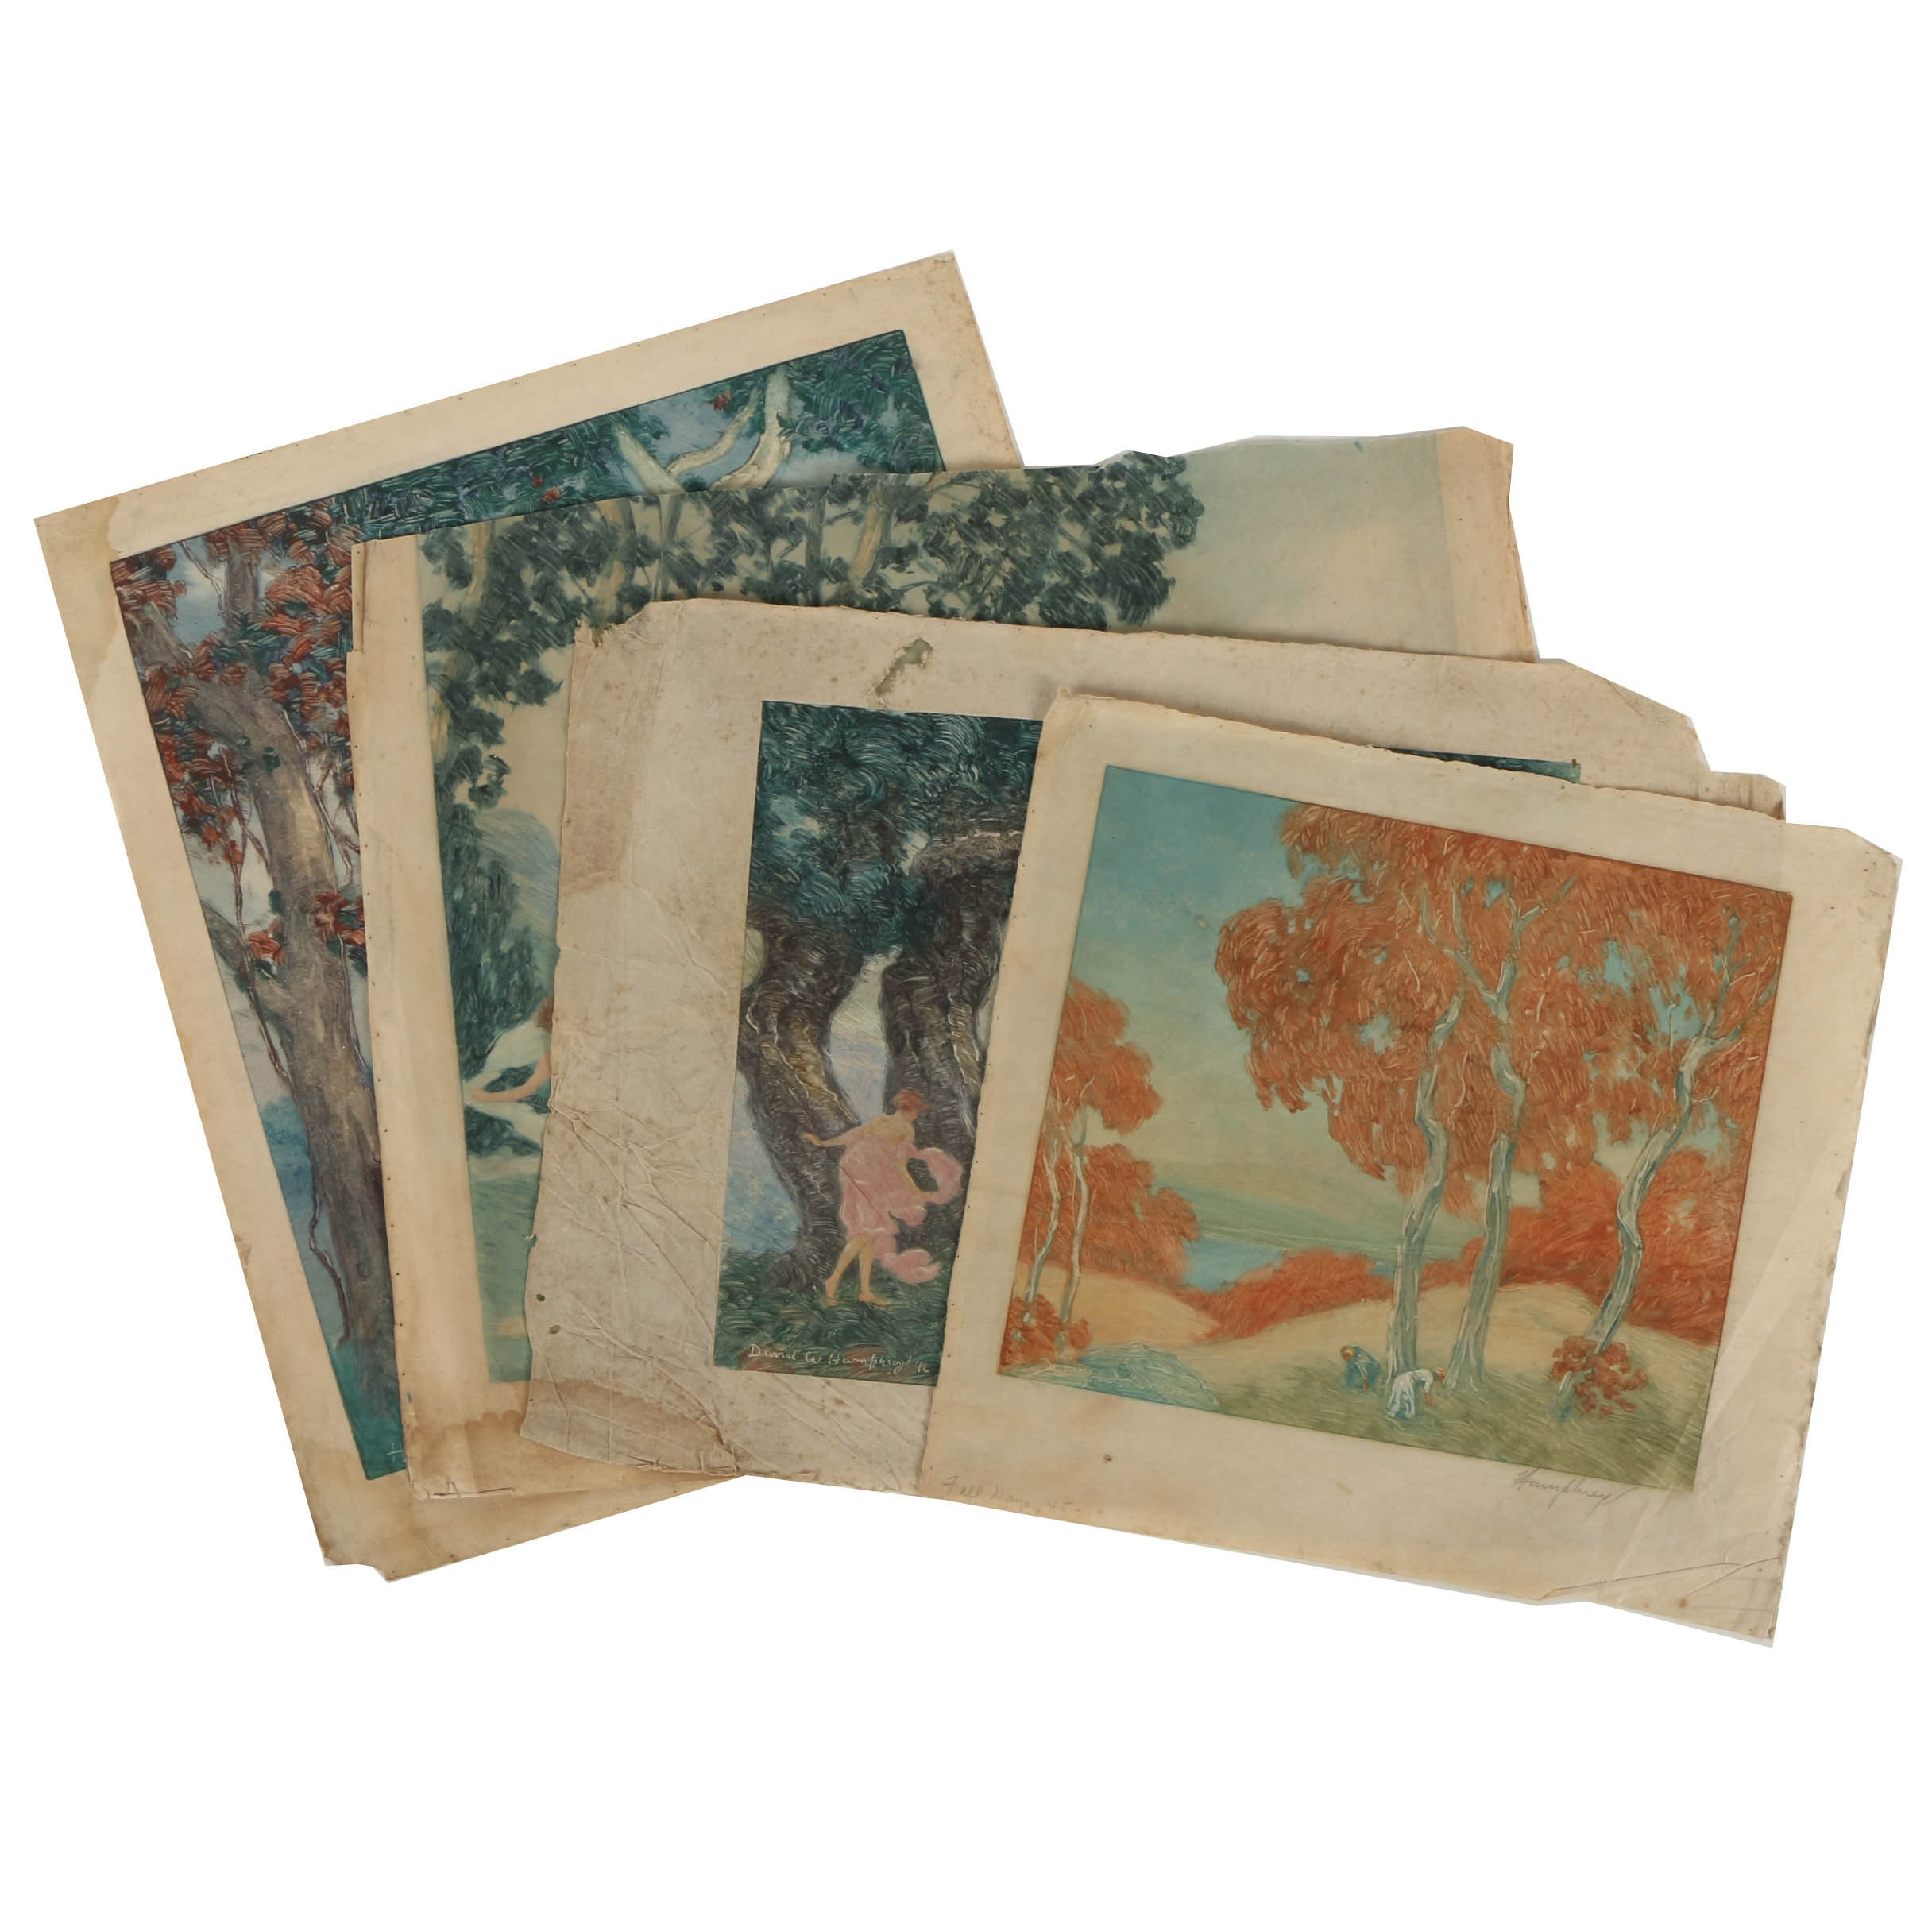 David W. Humphrey Lithographs on Paper of Landscapes and Classical Scenes